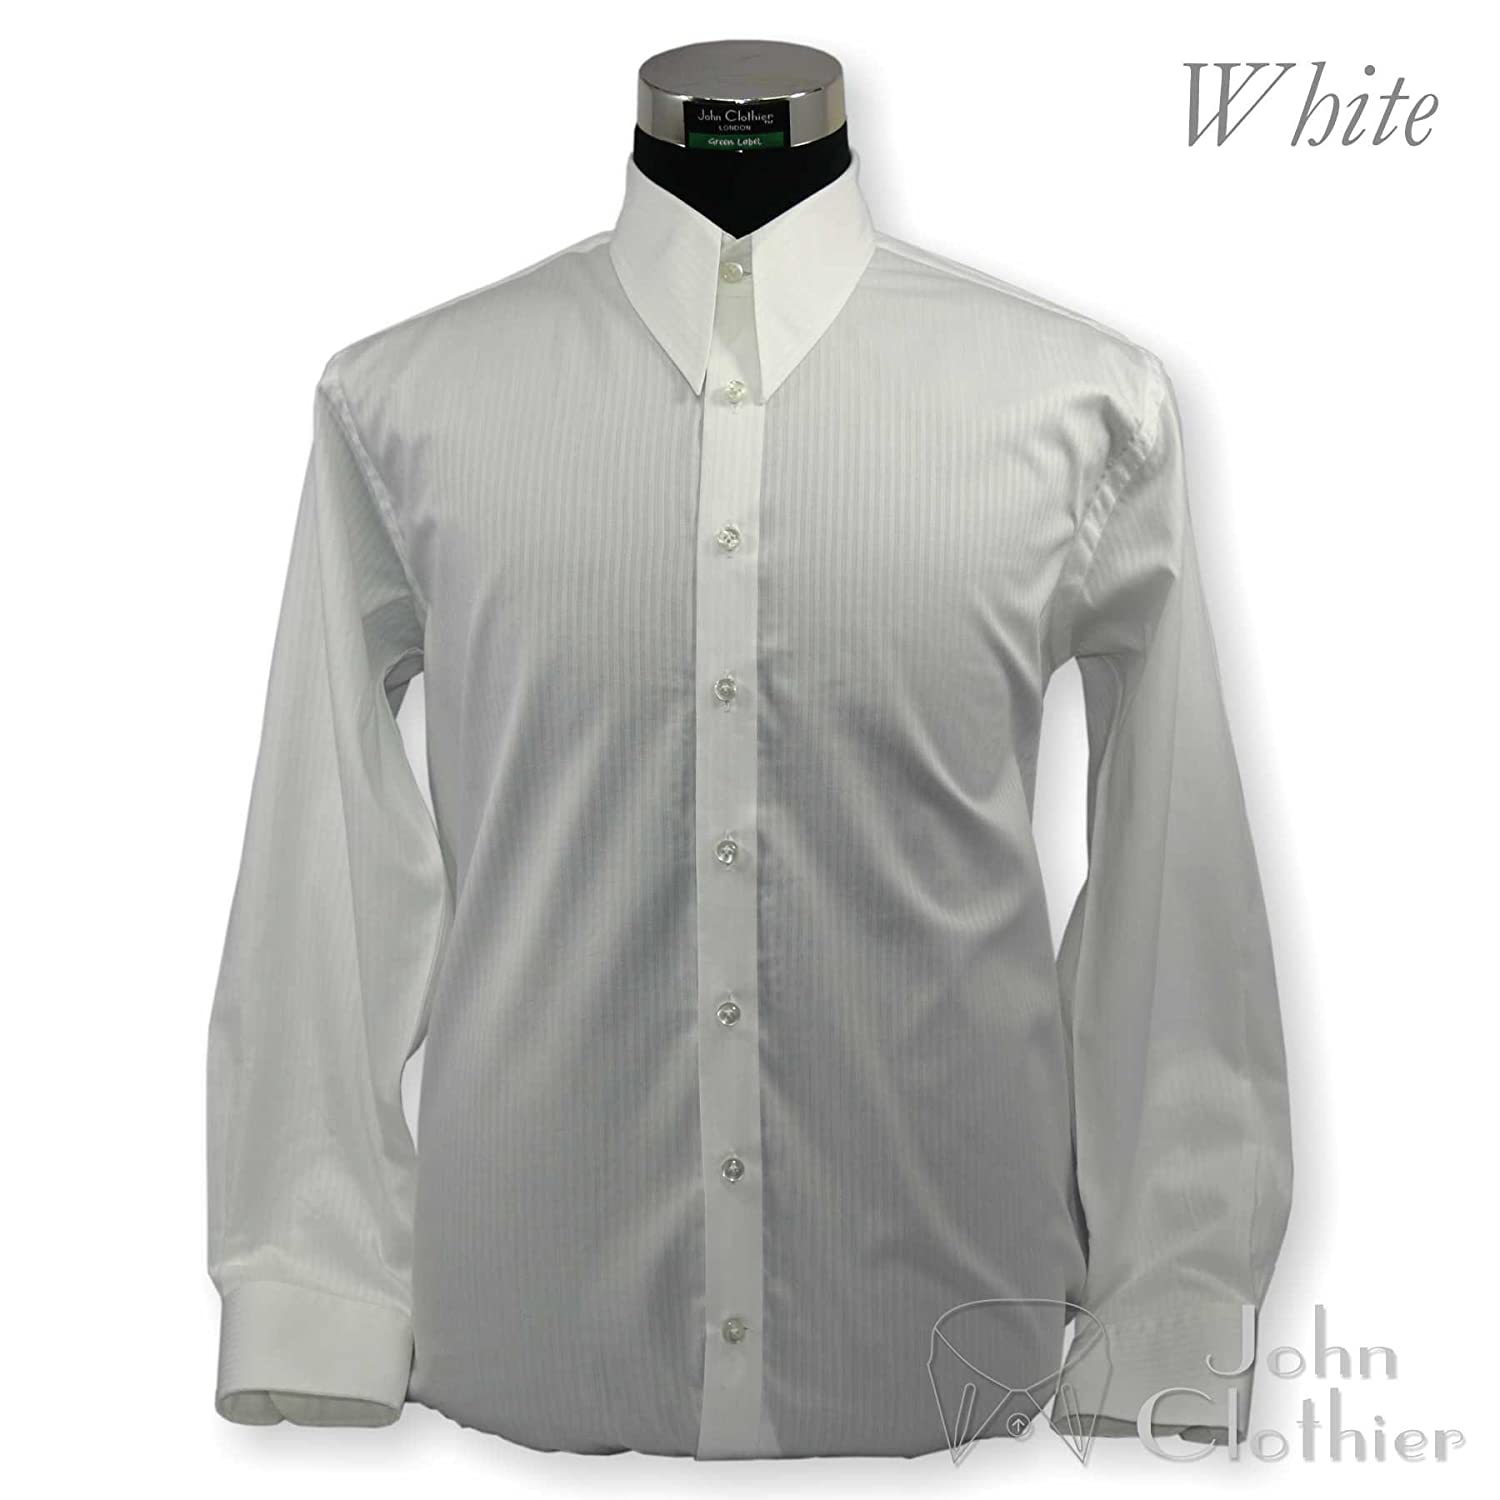 1940s 1950s Mens Spear Point Collar Shirts Vintage Antique Style Long Sleeves 100/% Cotton Relax Fit Shirts White Dobby 200-09